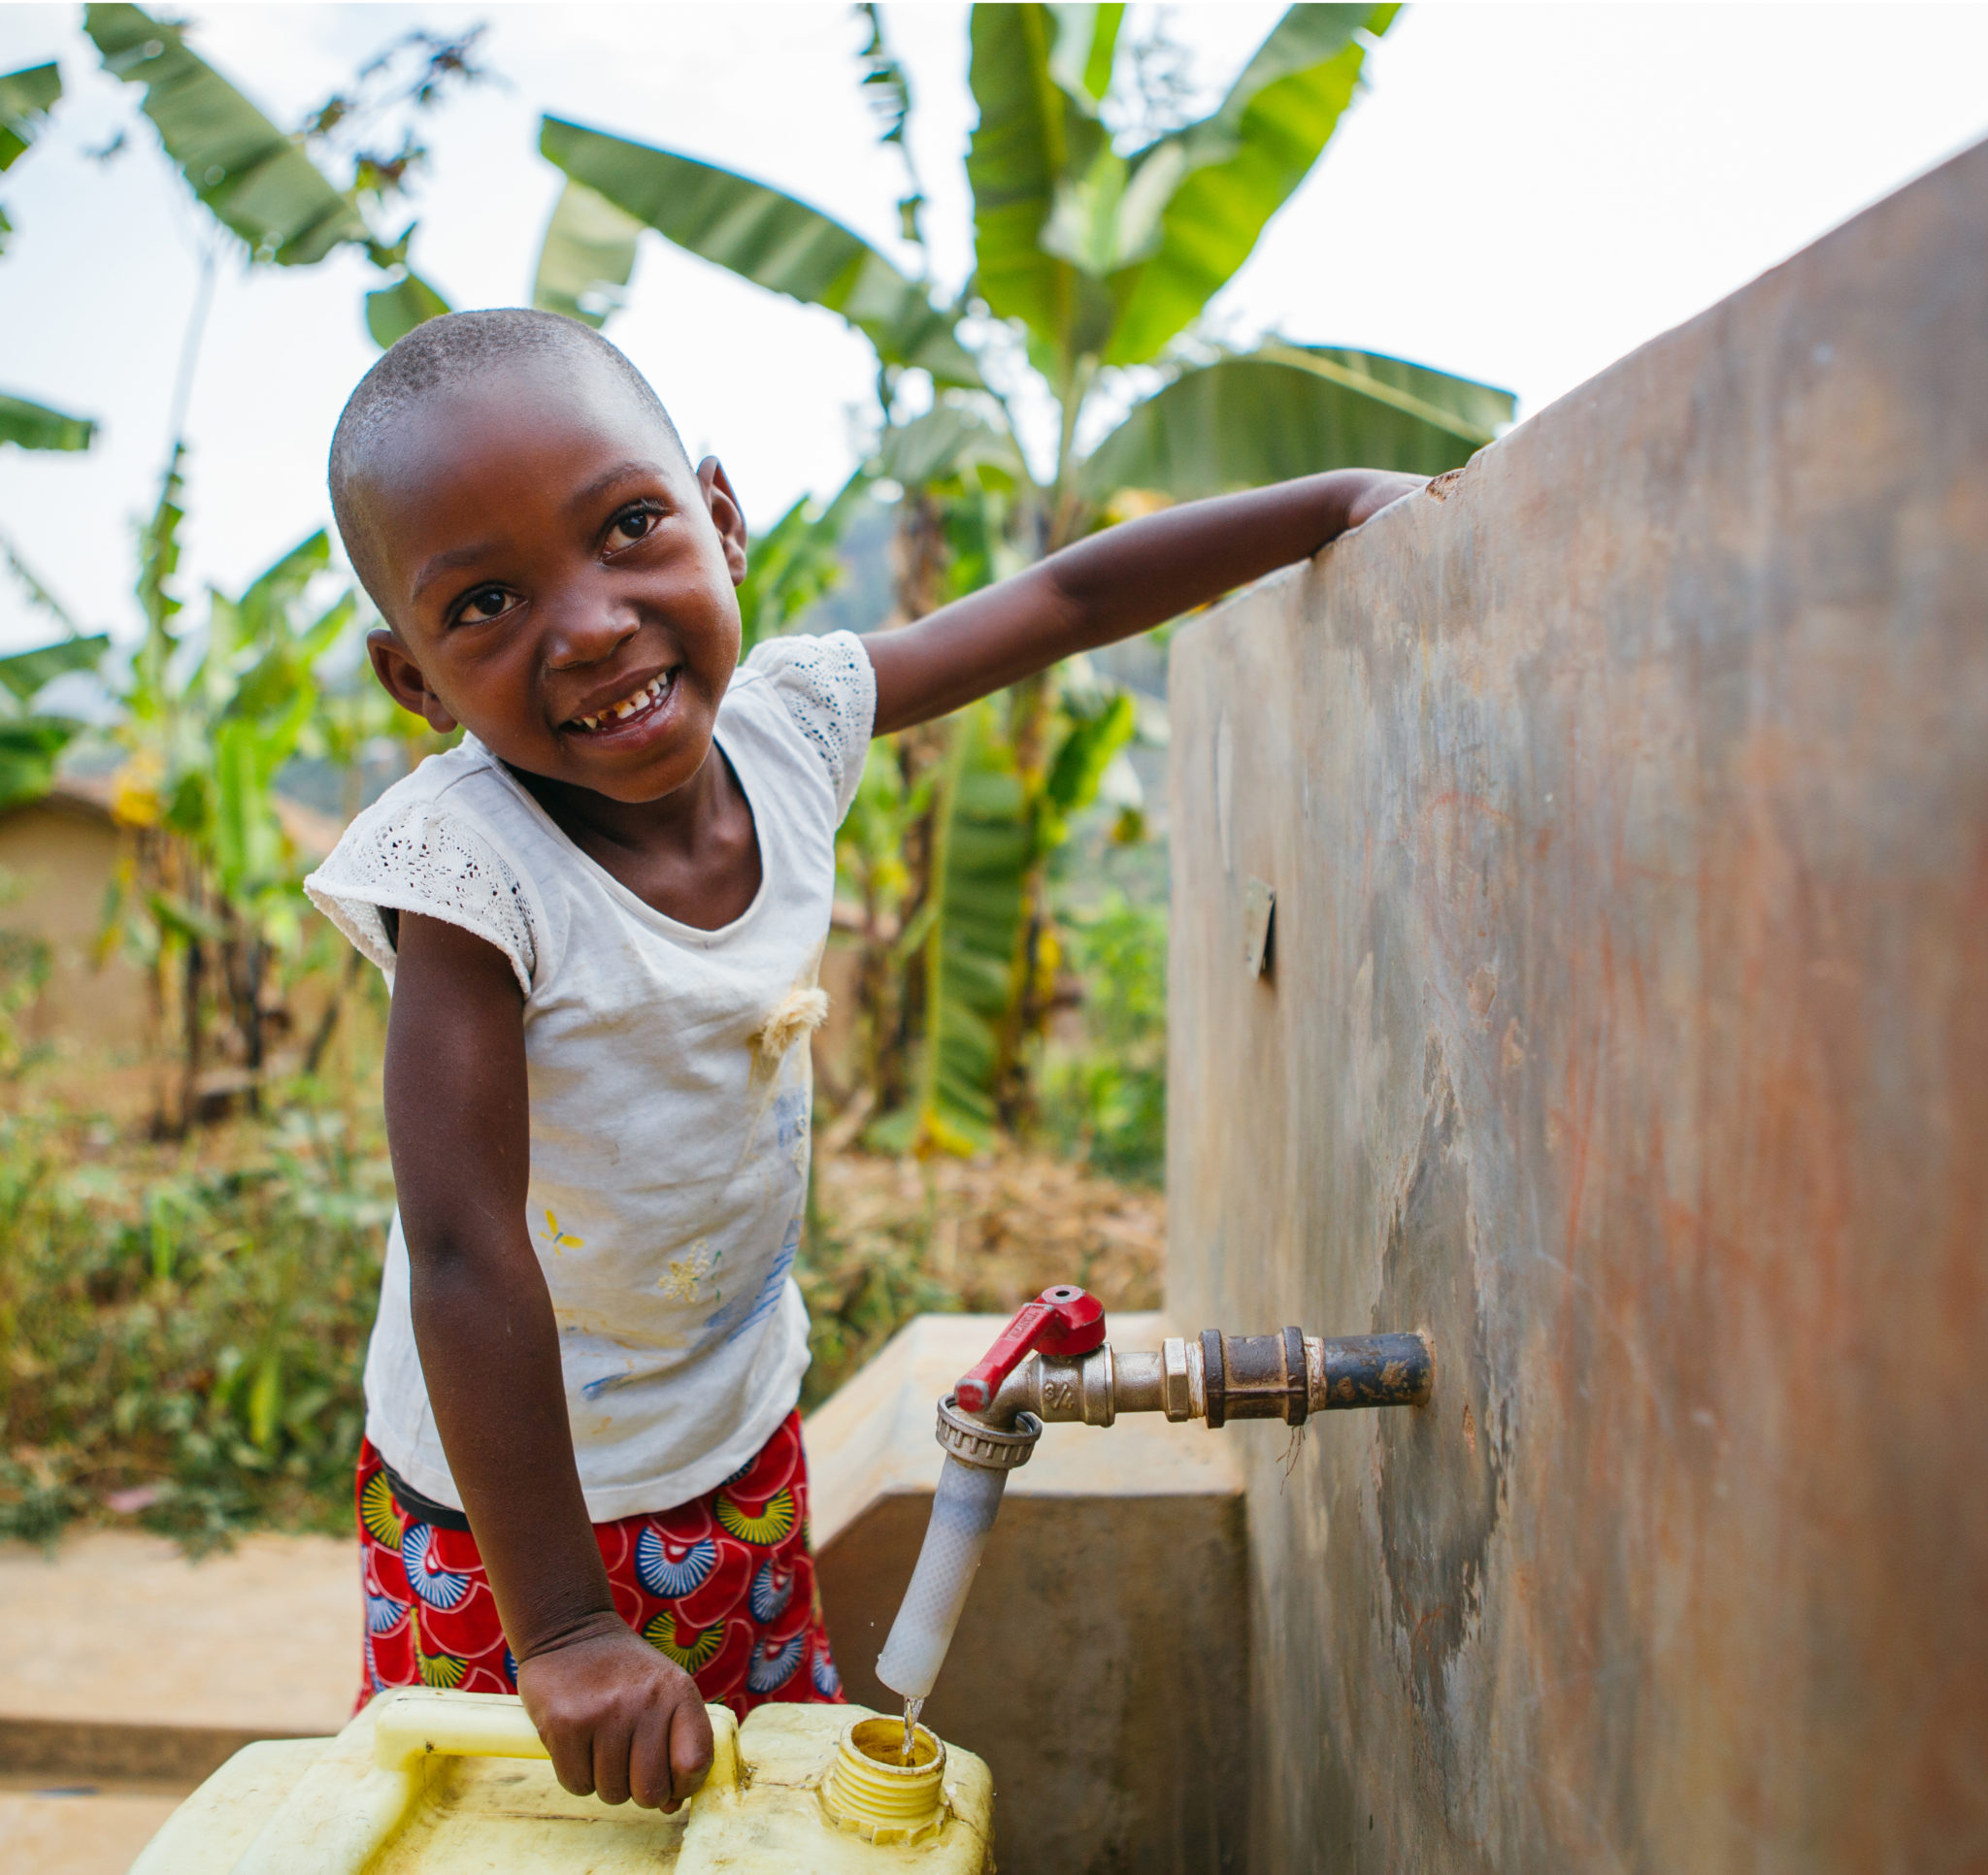 happy child filling up water jug | The Progress, Milestones & Stats | Water For People